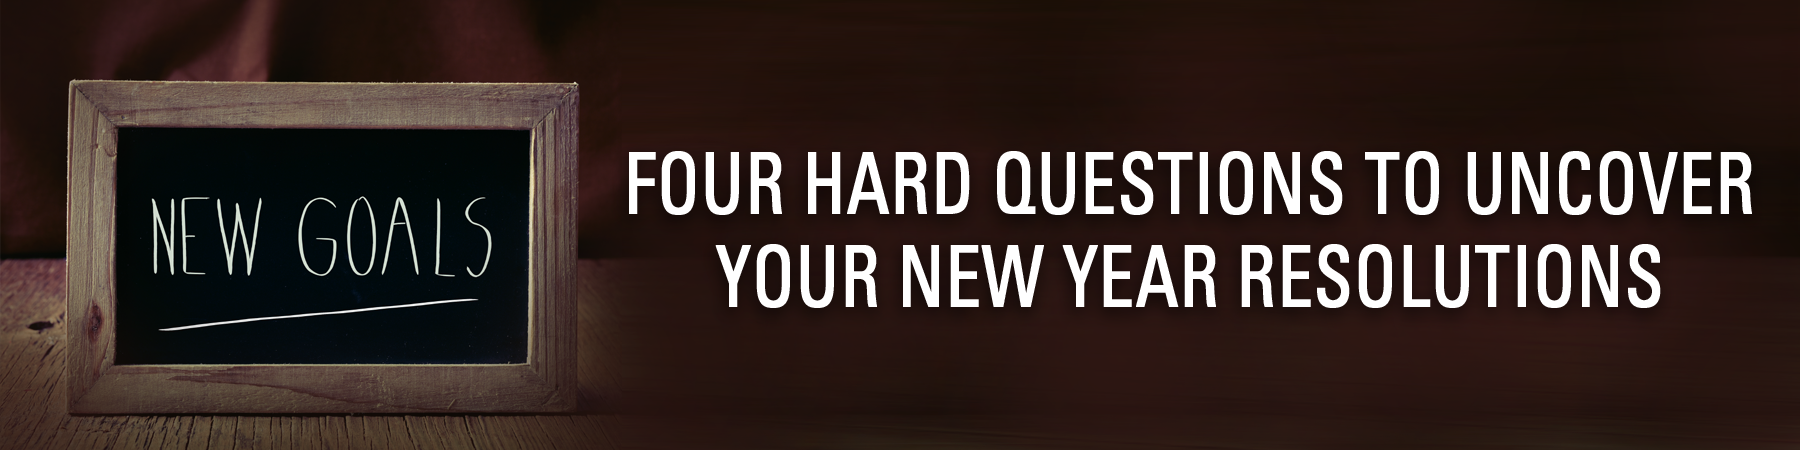 FOUR HARD QUESTIONS TO UNCOVER YOUR NEW YEAR RESOLUTIONS